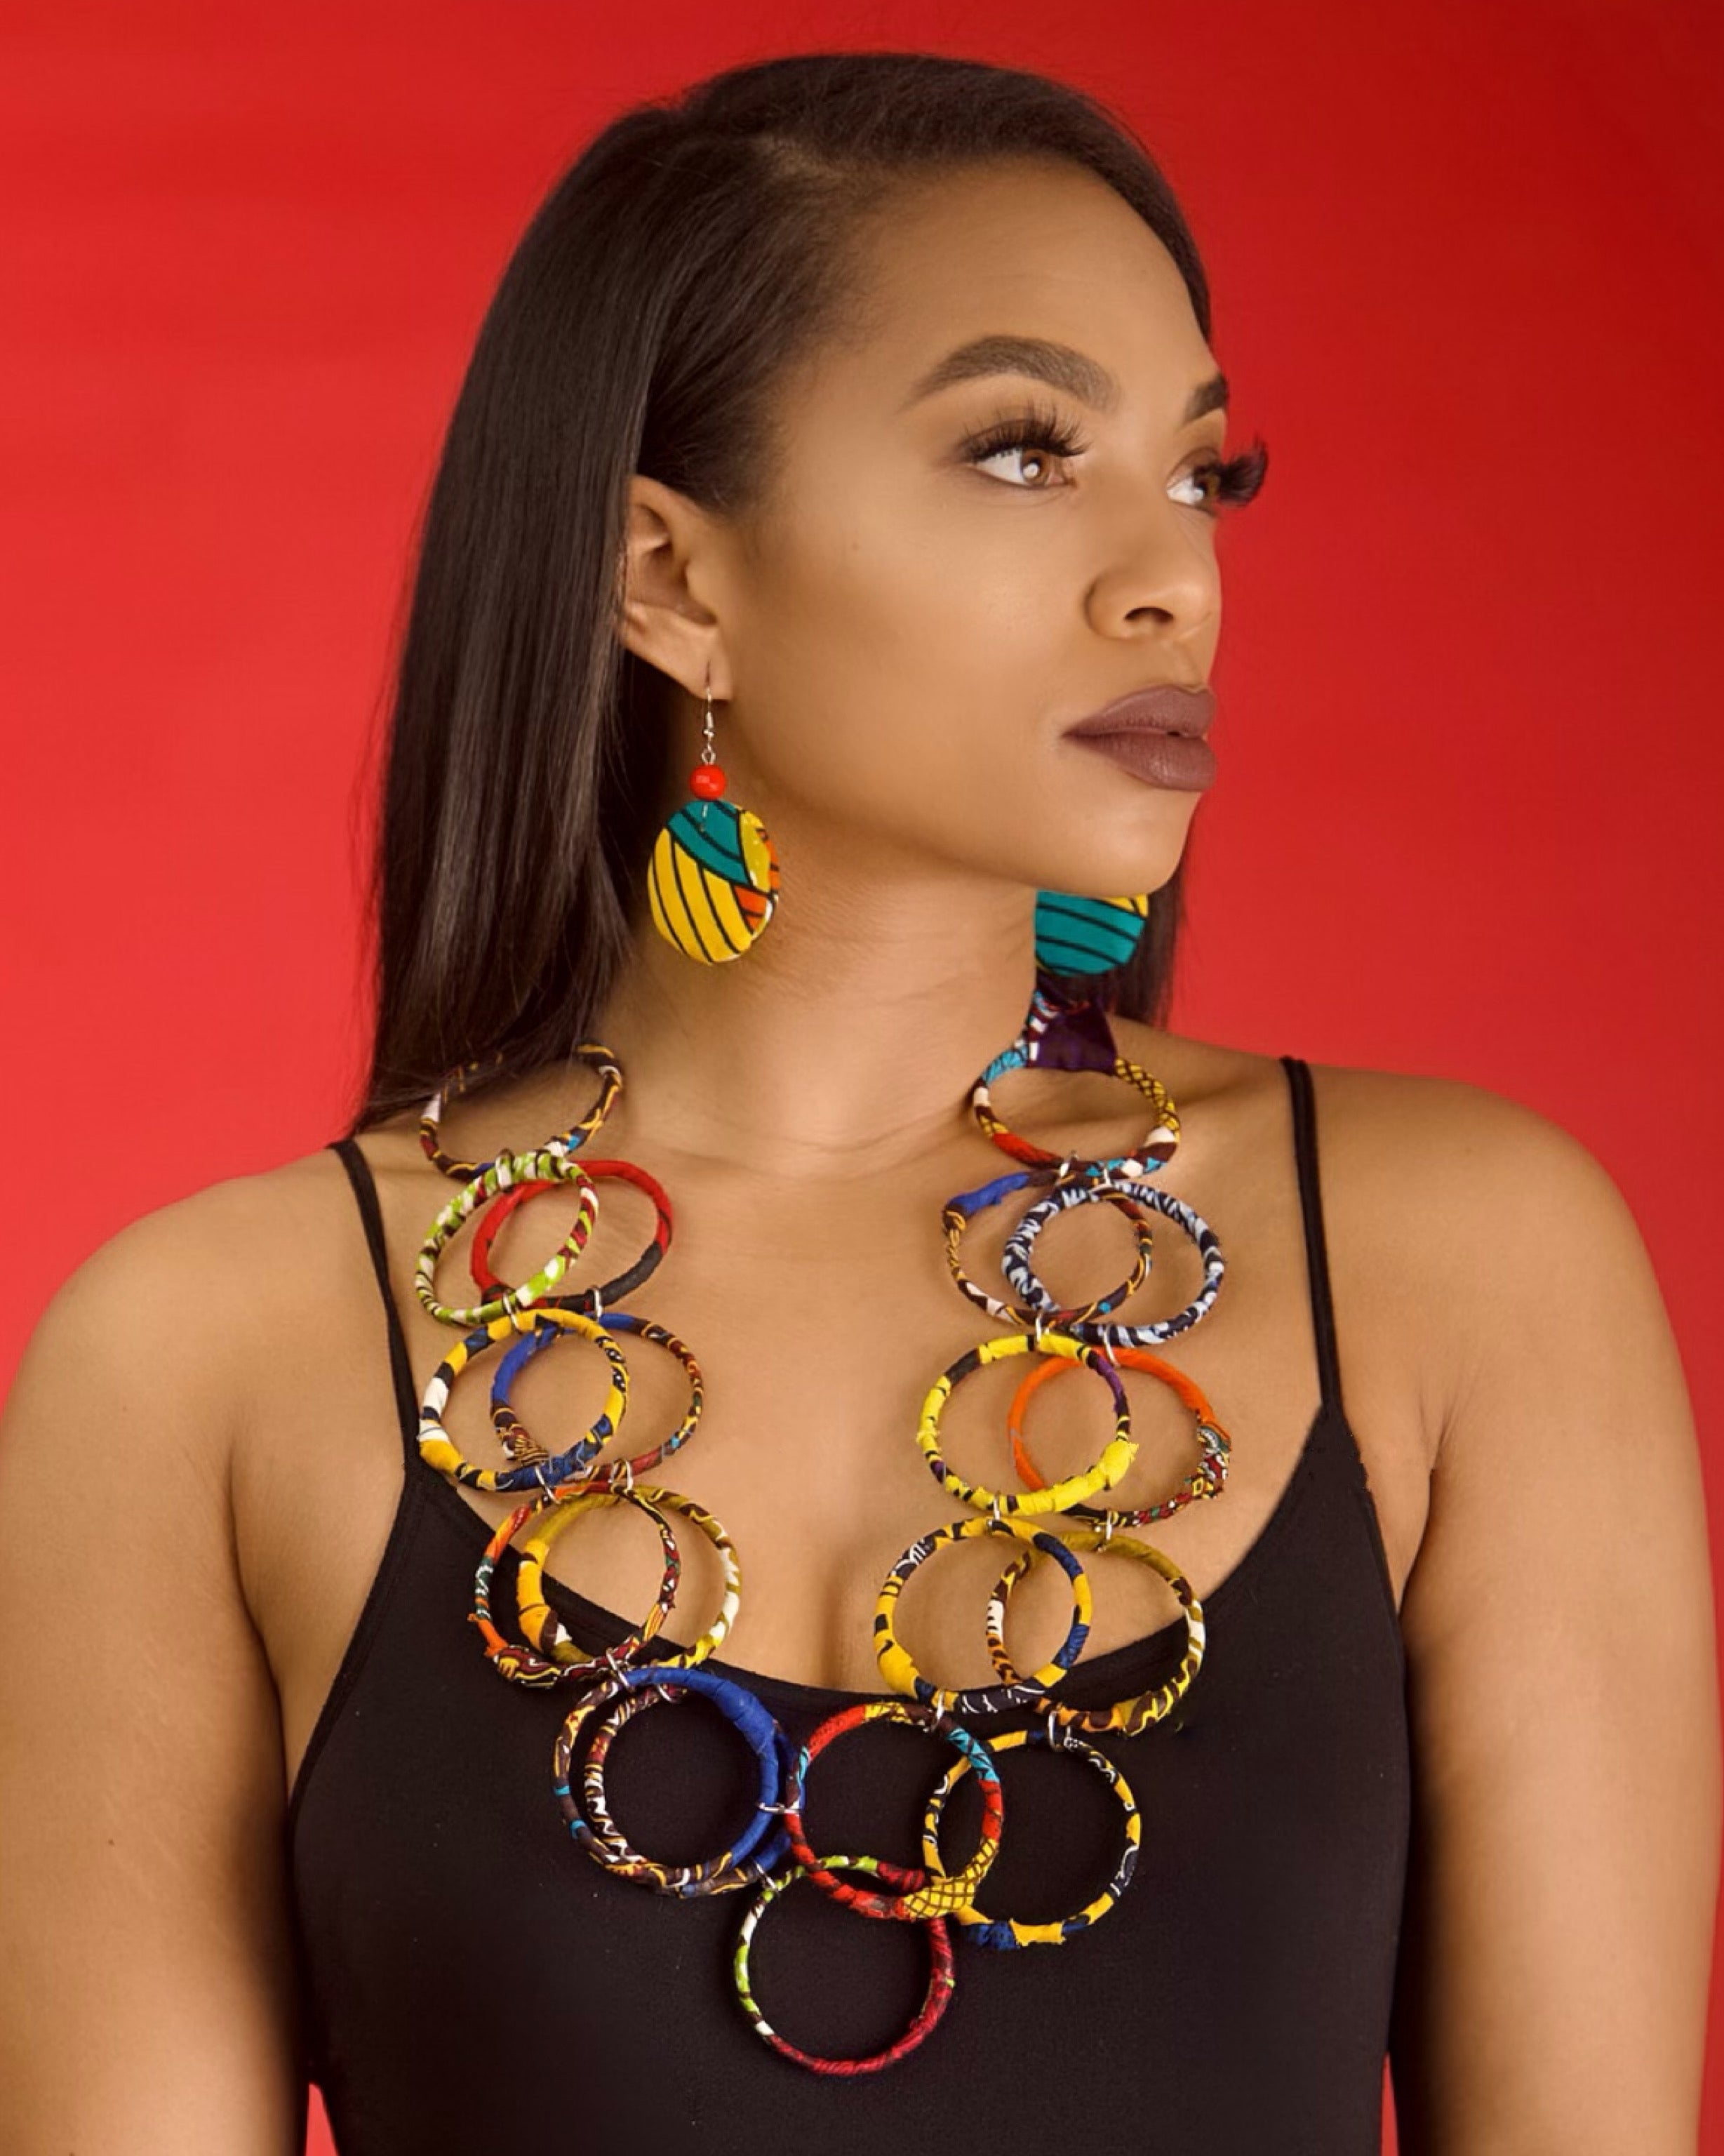 Soala Ring Necklace And Earring